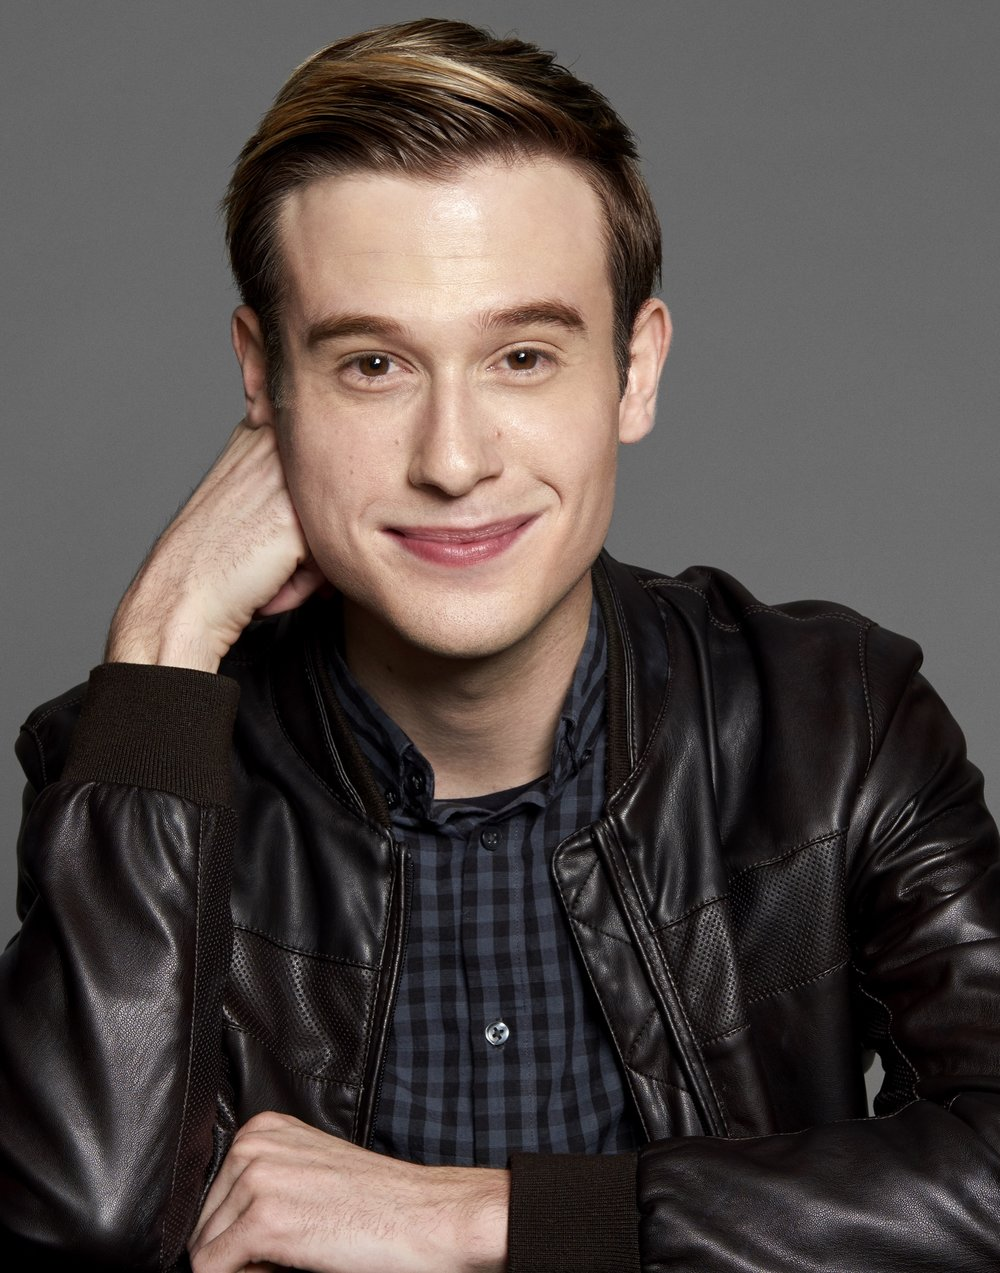 Copy of TylerHenry_02_0119_C.jpg